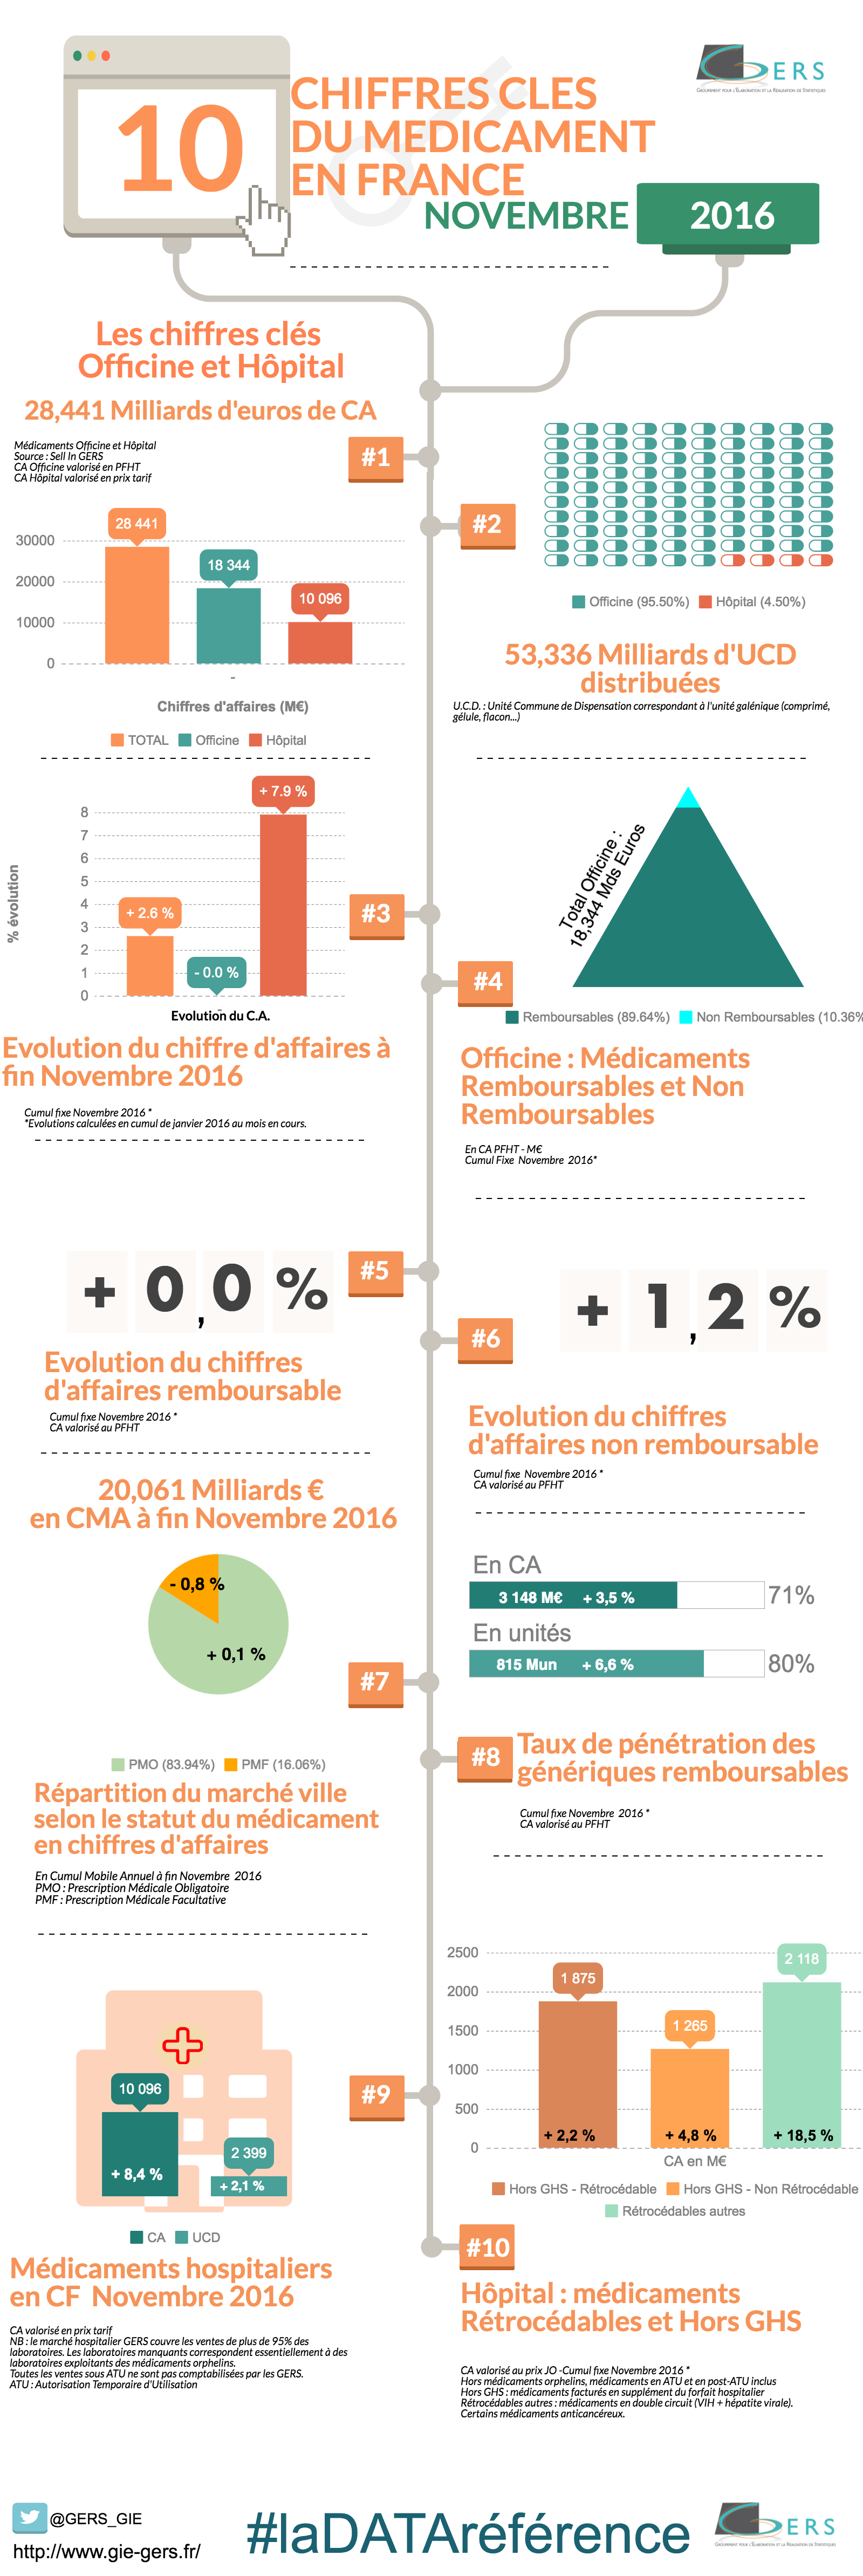 INFOGRAPHIE GIE GERS NOVEMBRE 2016